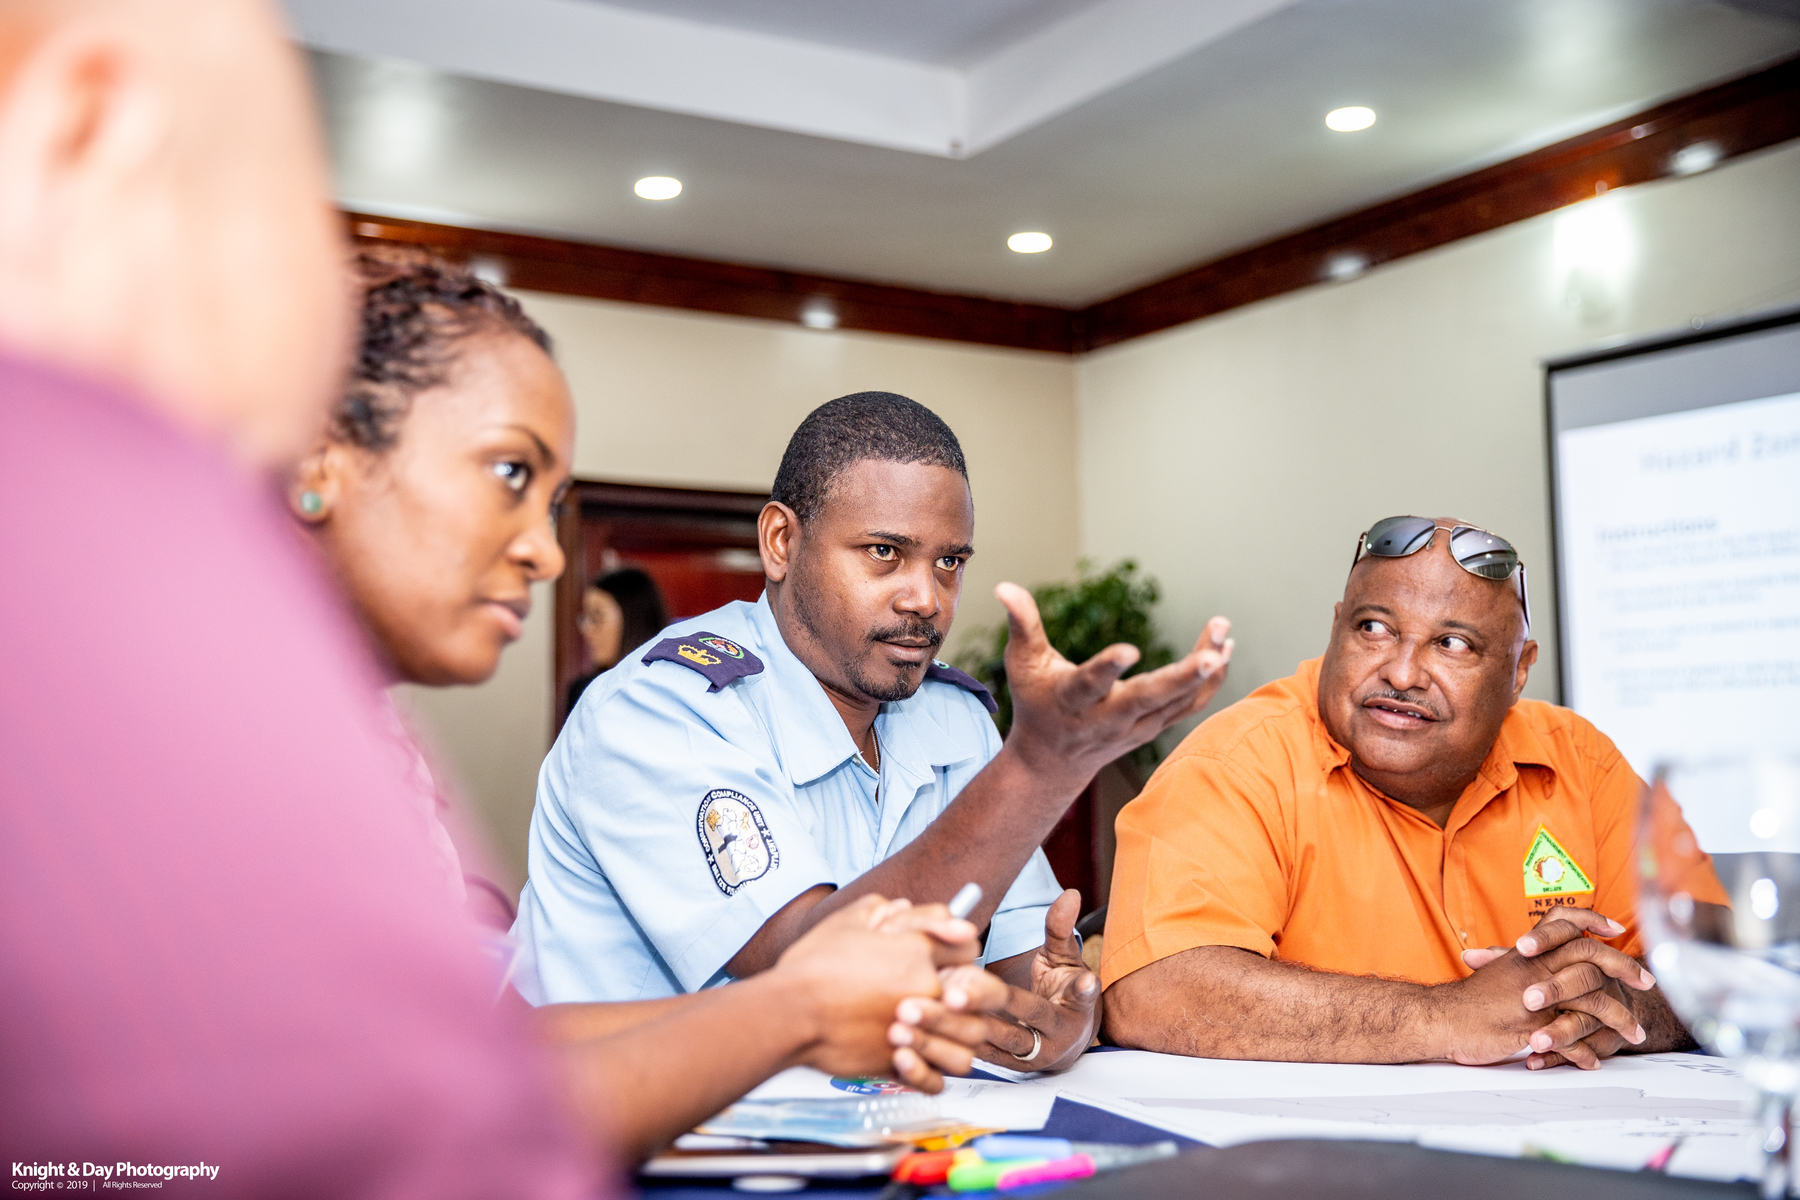 Belize disaster management professionals discuss a mapping exercise at the NDPBA kick off